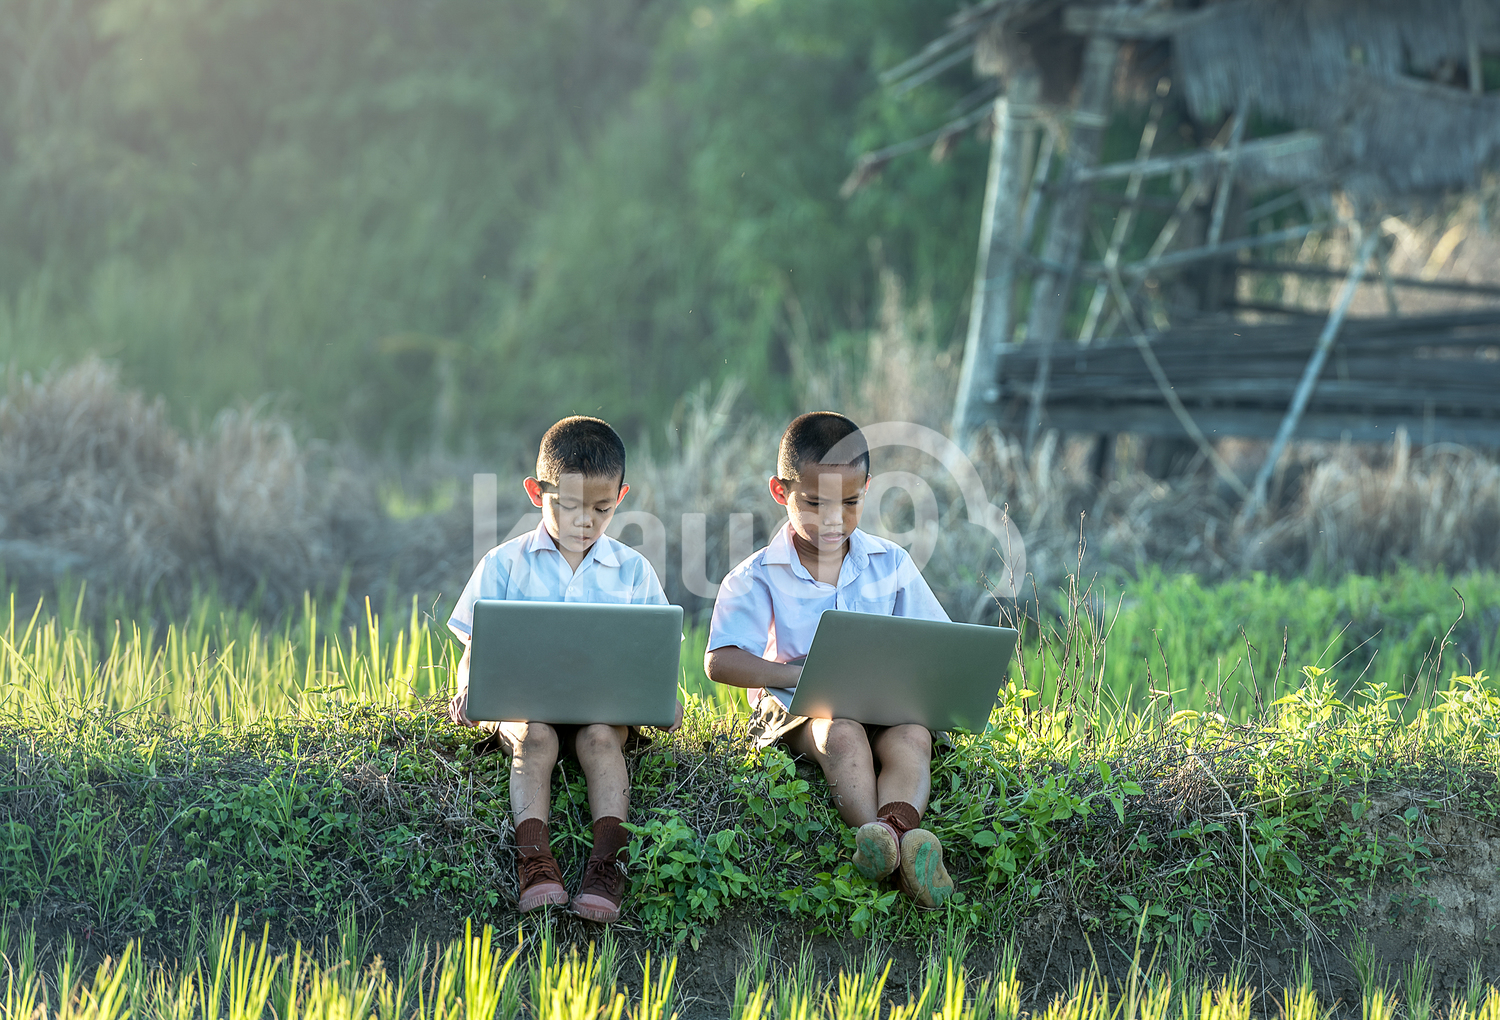 Two boys using a laptop